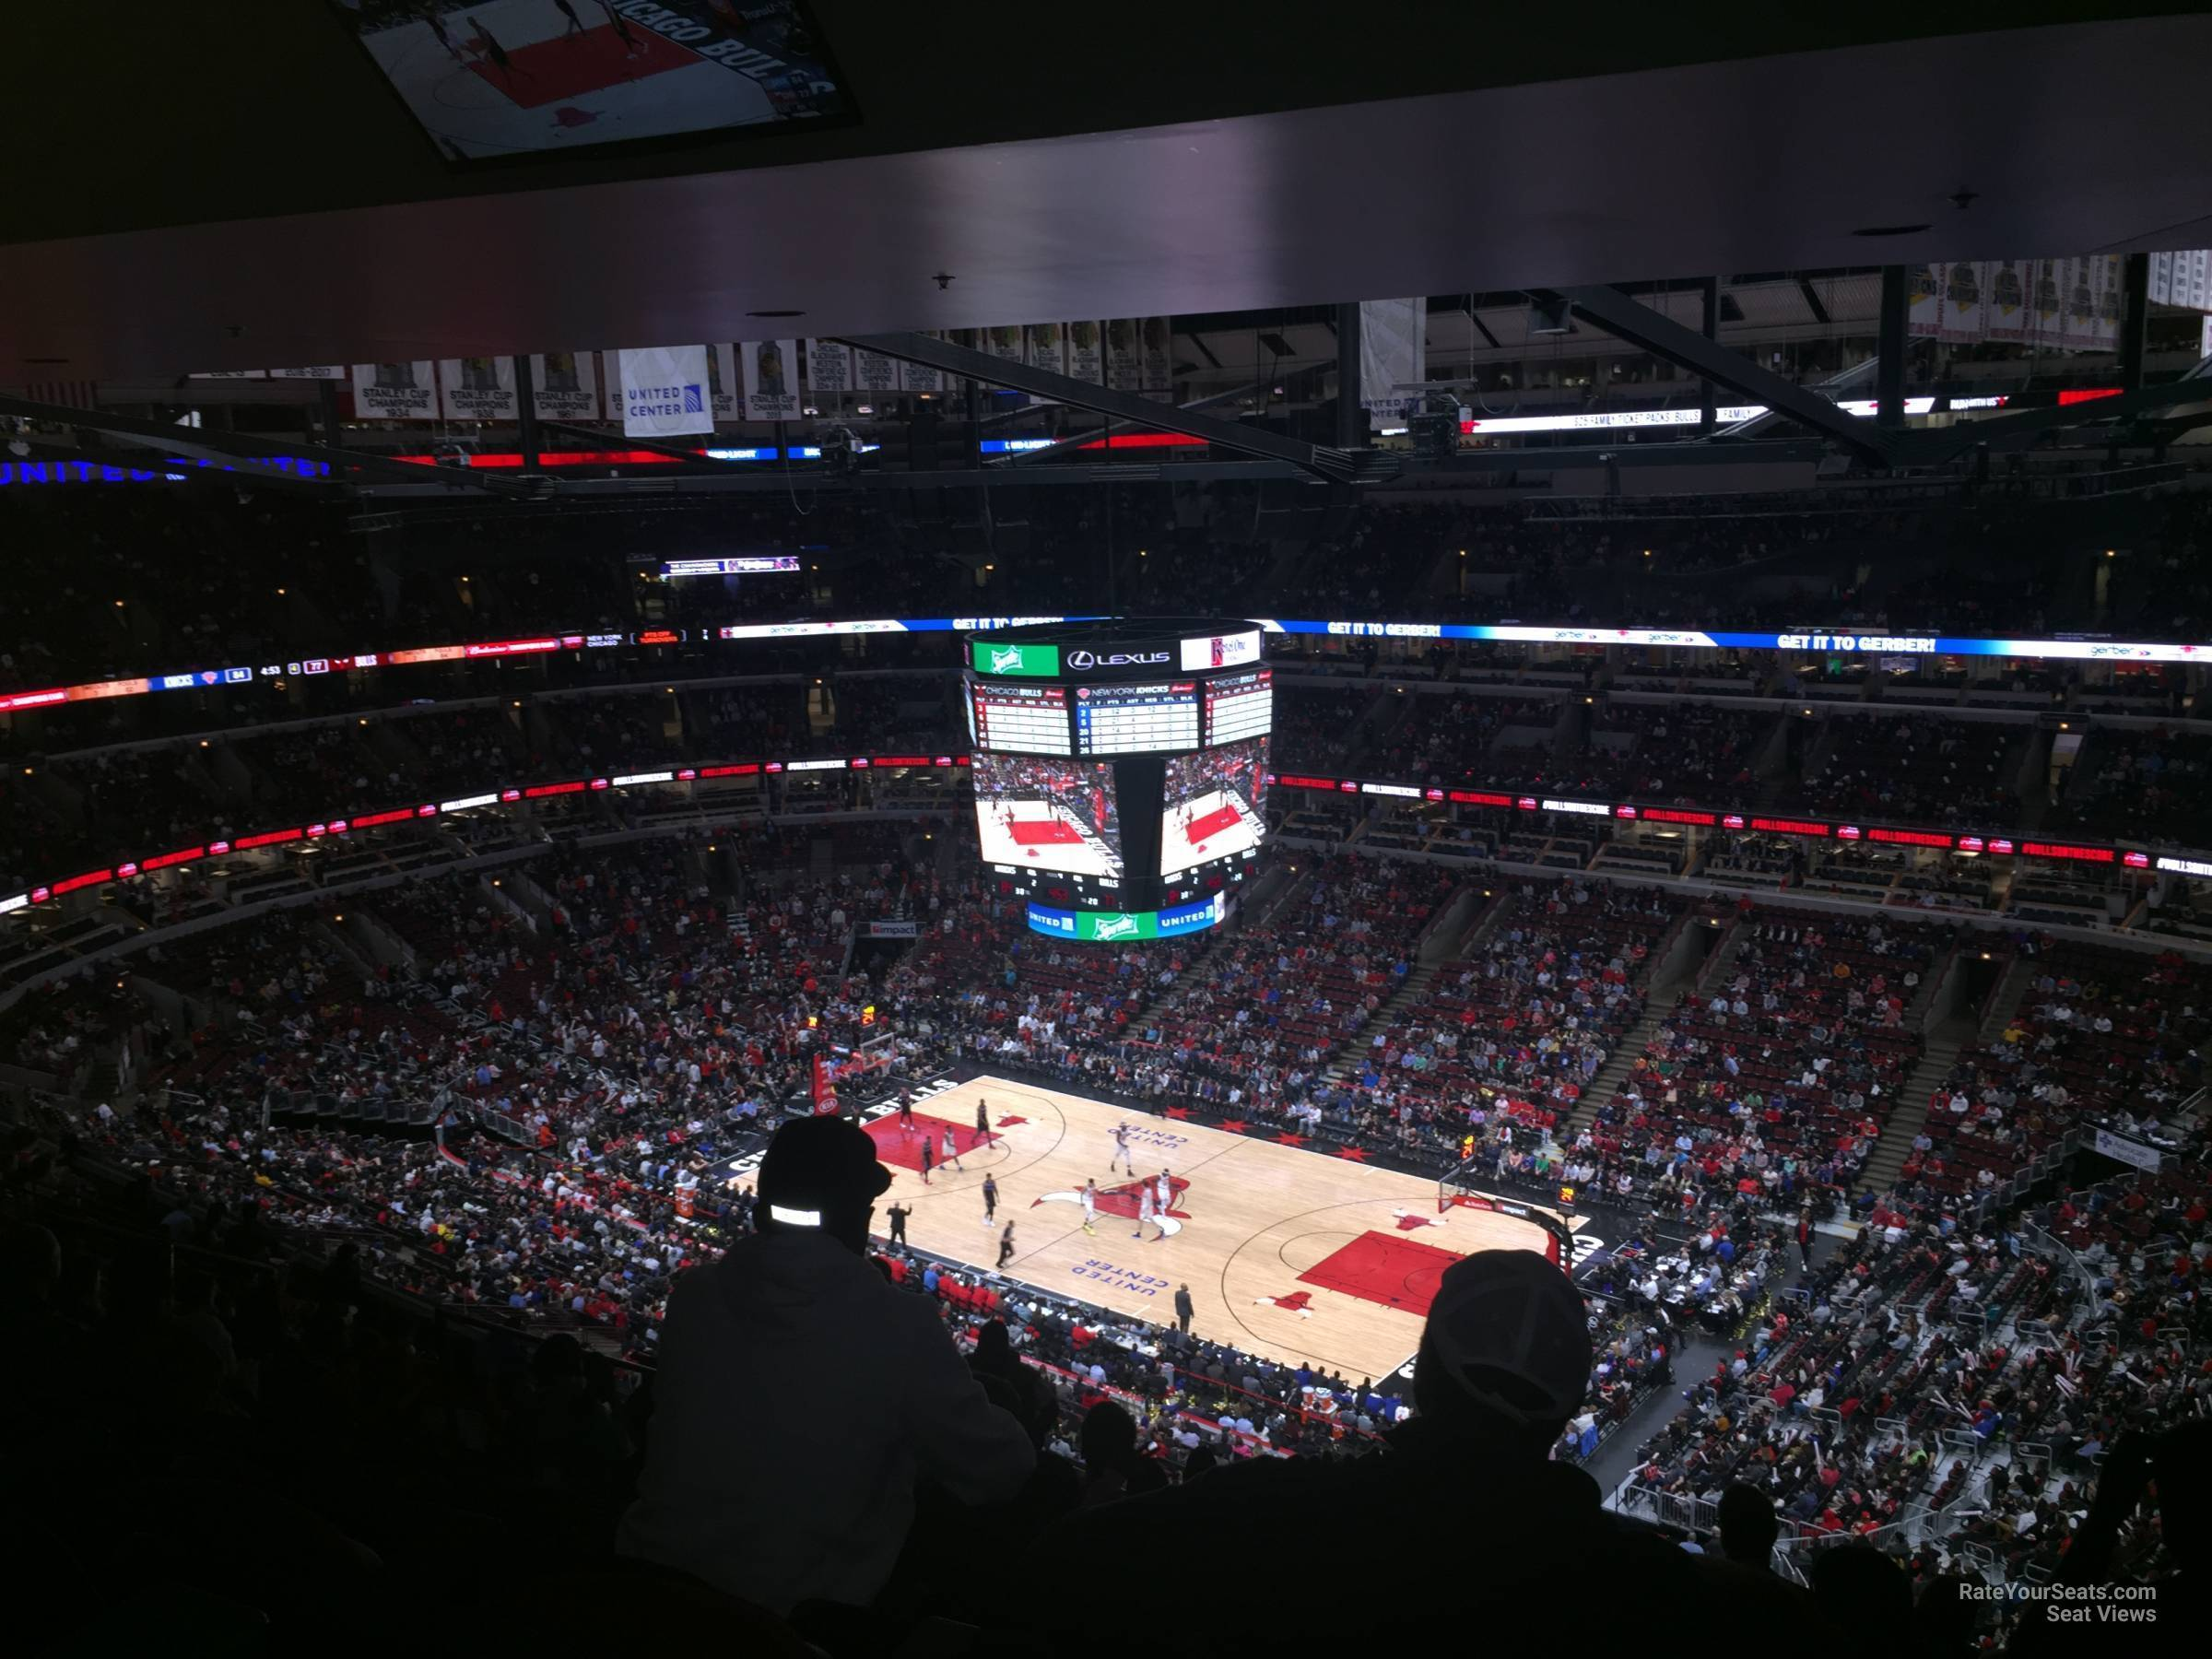 United Center Section 331 - Chicago Bulls - RateYourSeats.com